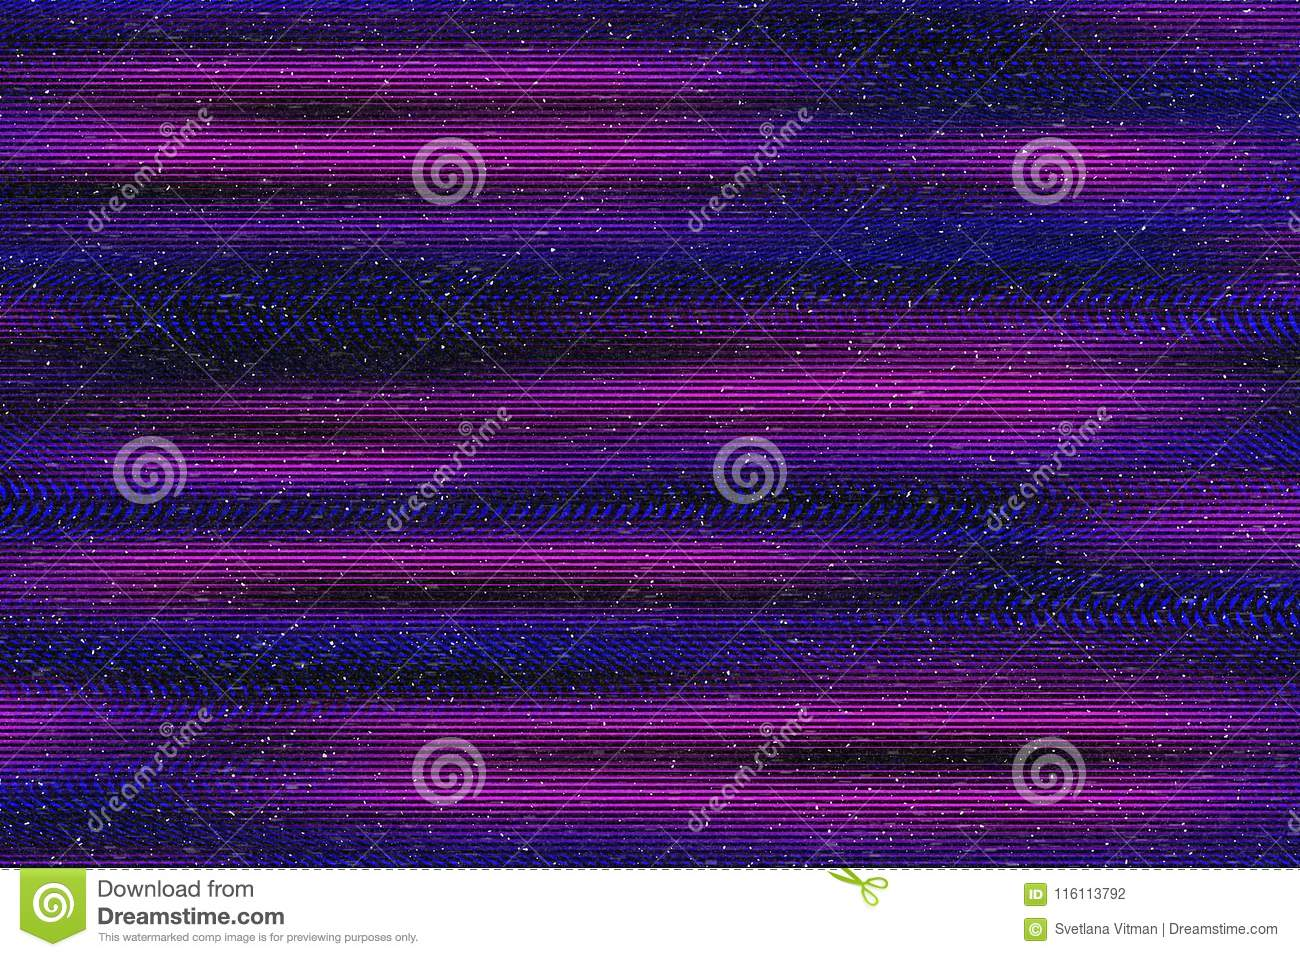 Glitch psychedelic background. Old TV screen error. Digital pixel noise abstract design. Computer bug. Television signal